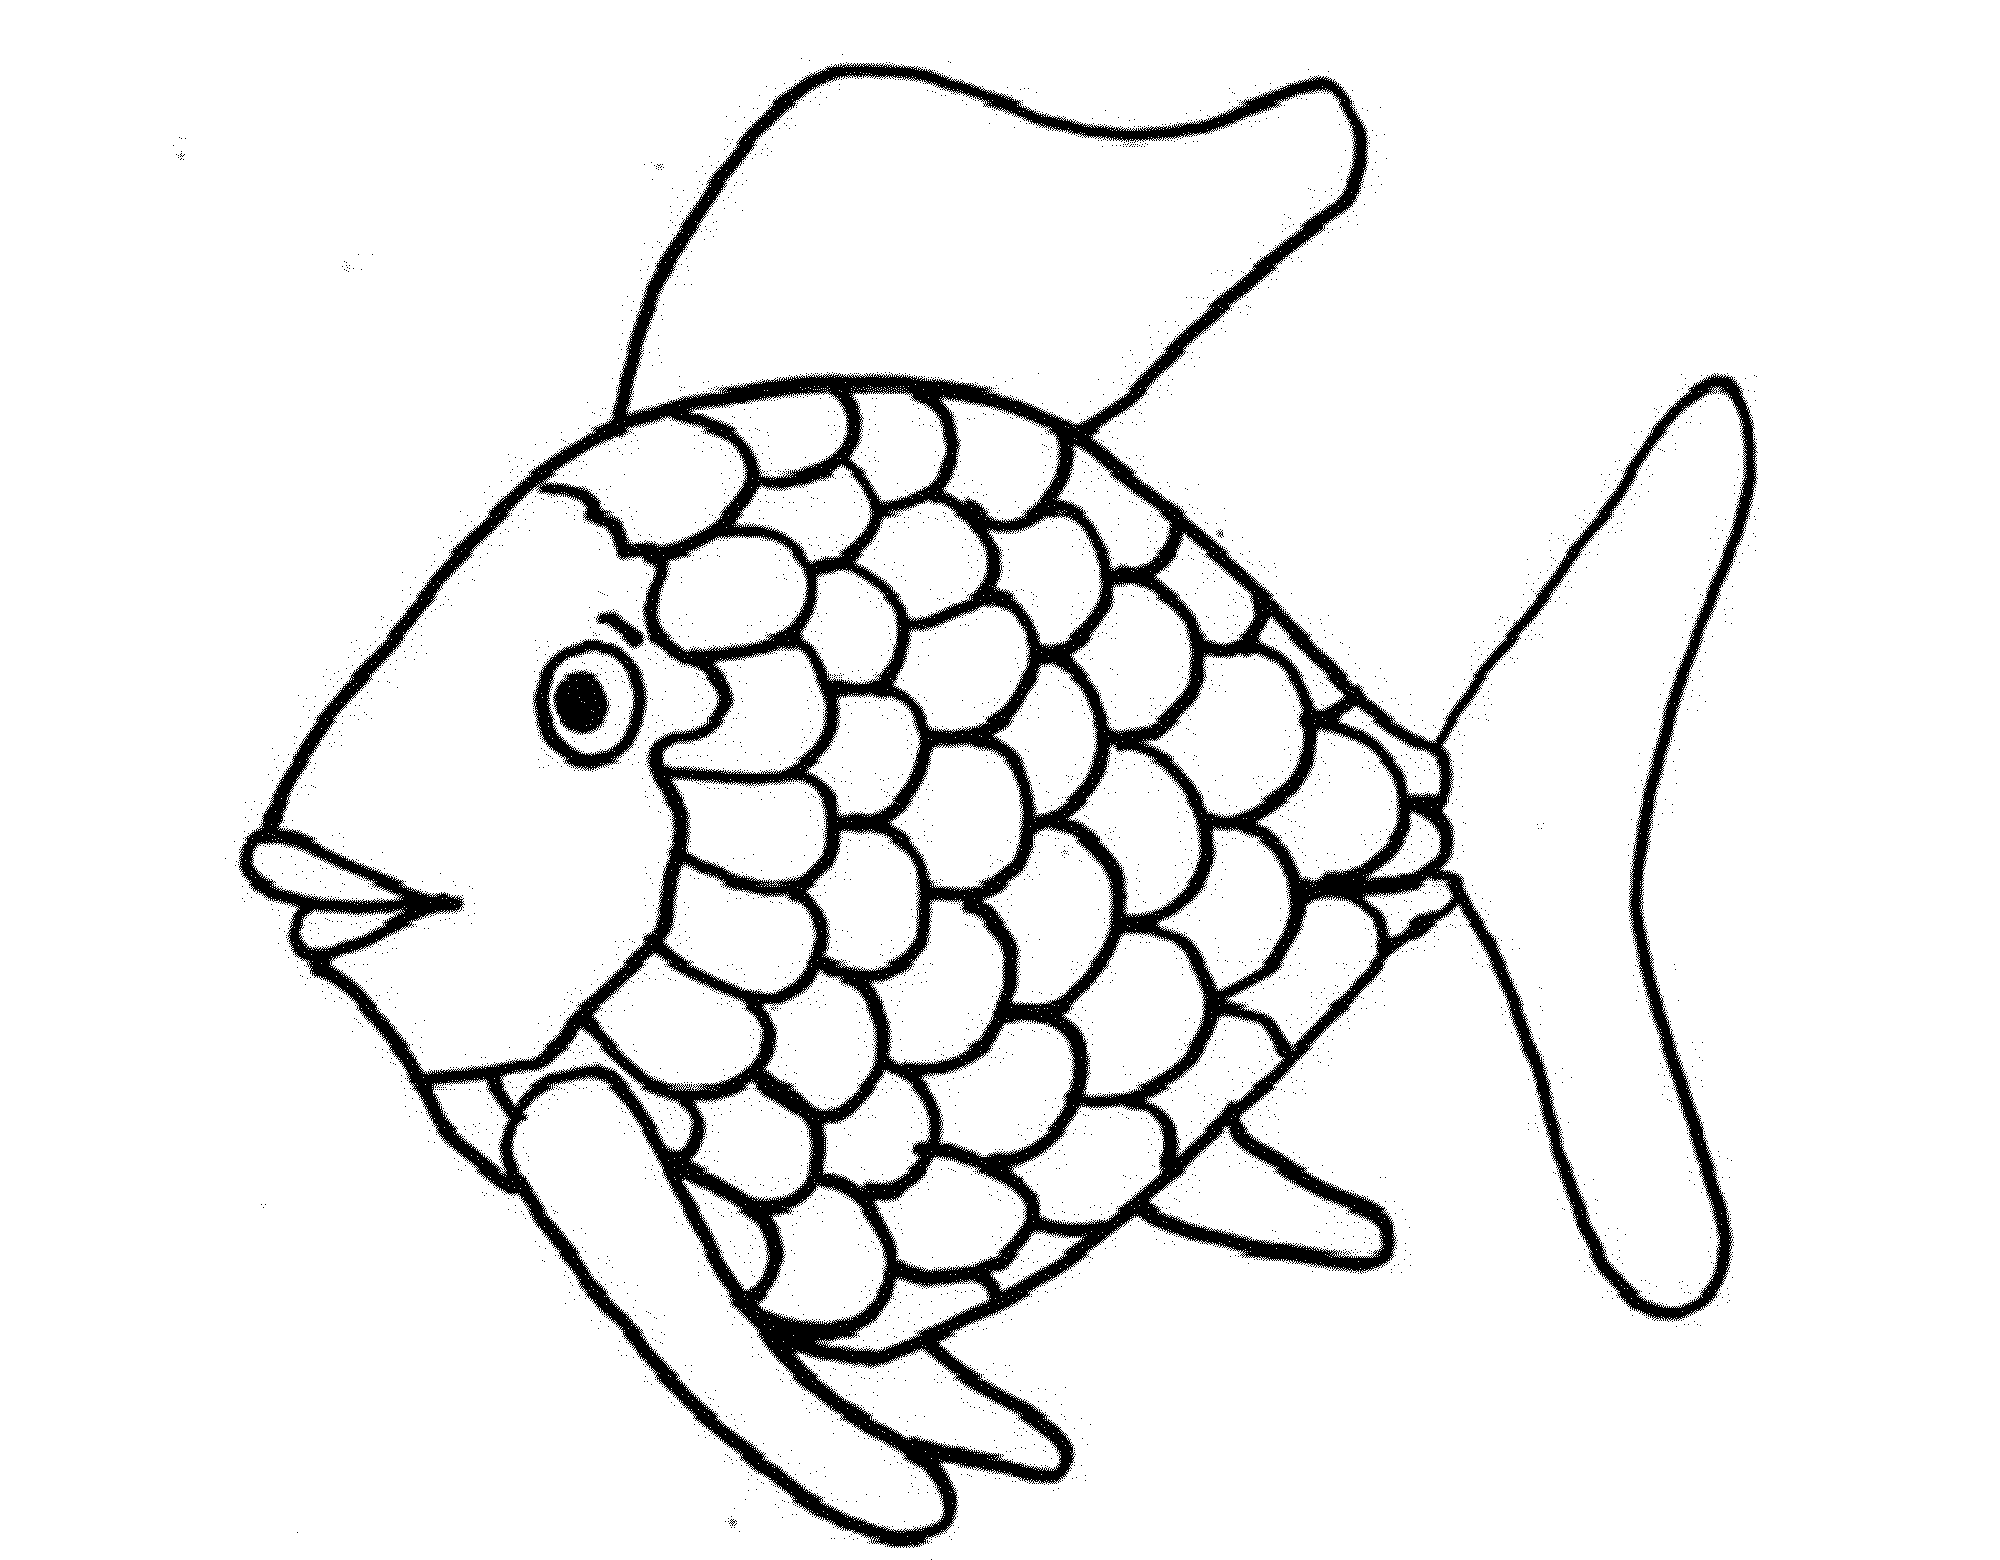 rainbow fish coloring pages - photo#10